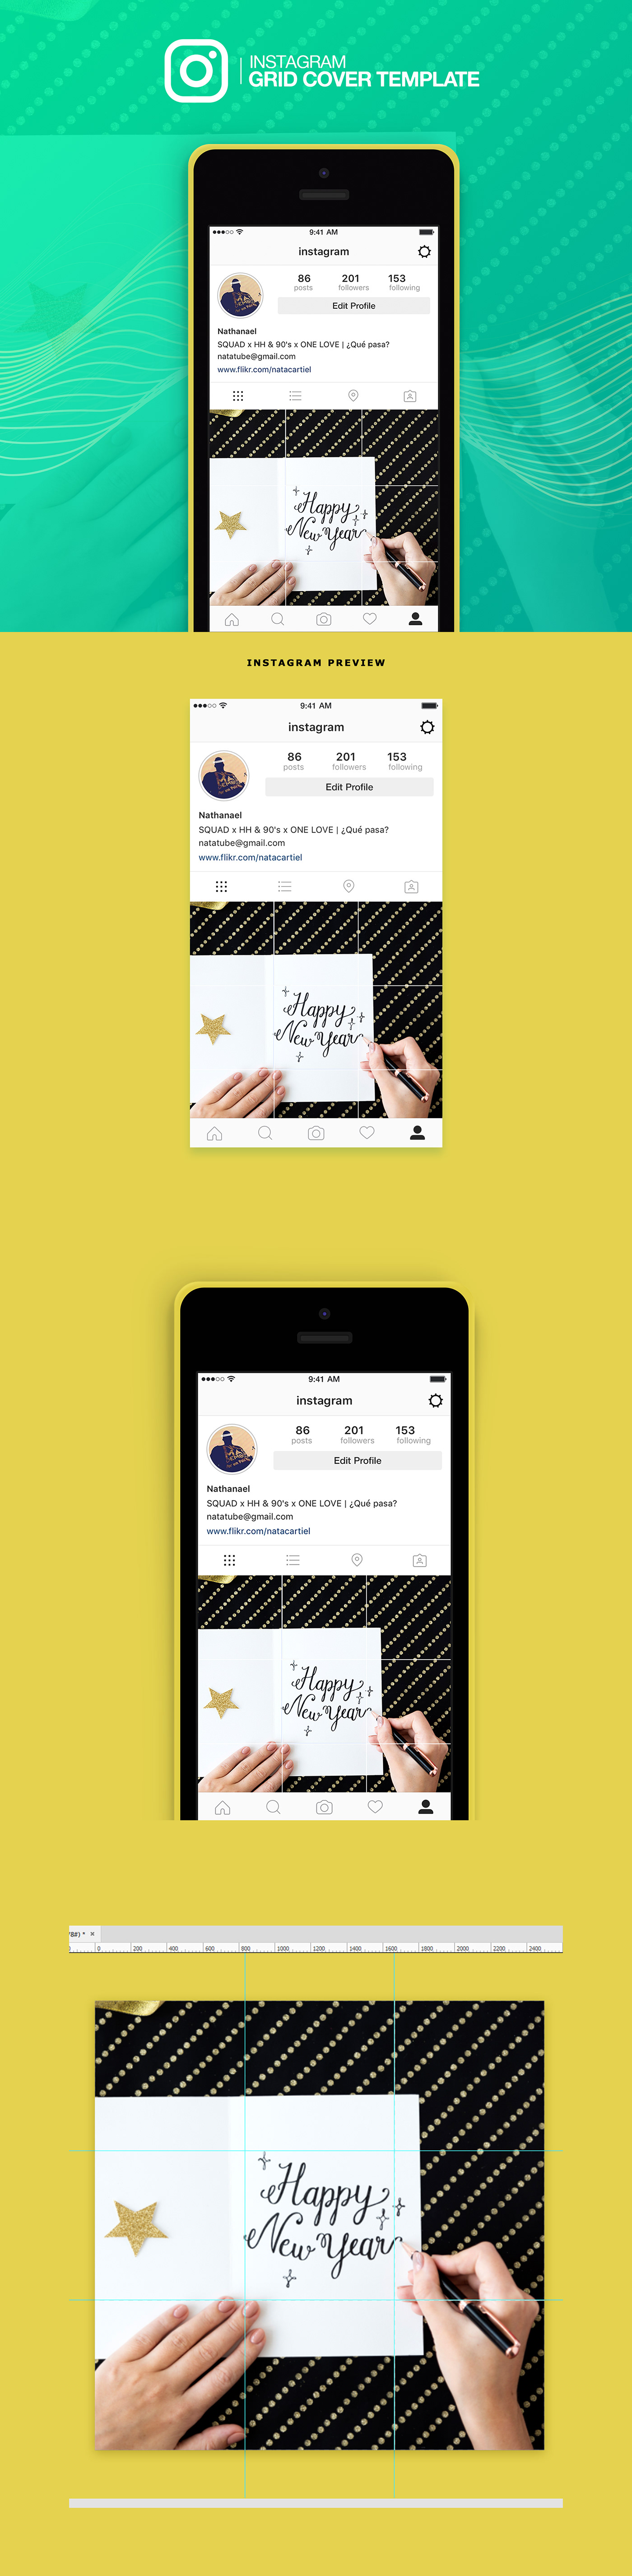 app design download free free psd freebies instagram grid cover grid cover template instagram grid template Instagram template